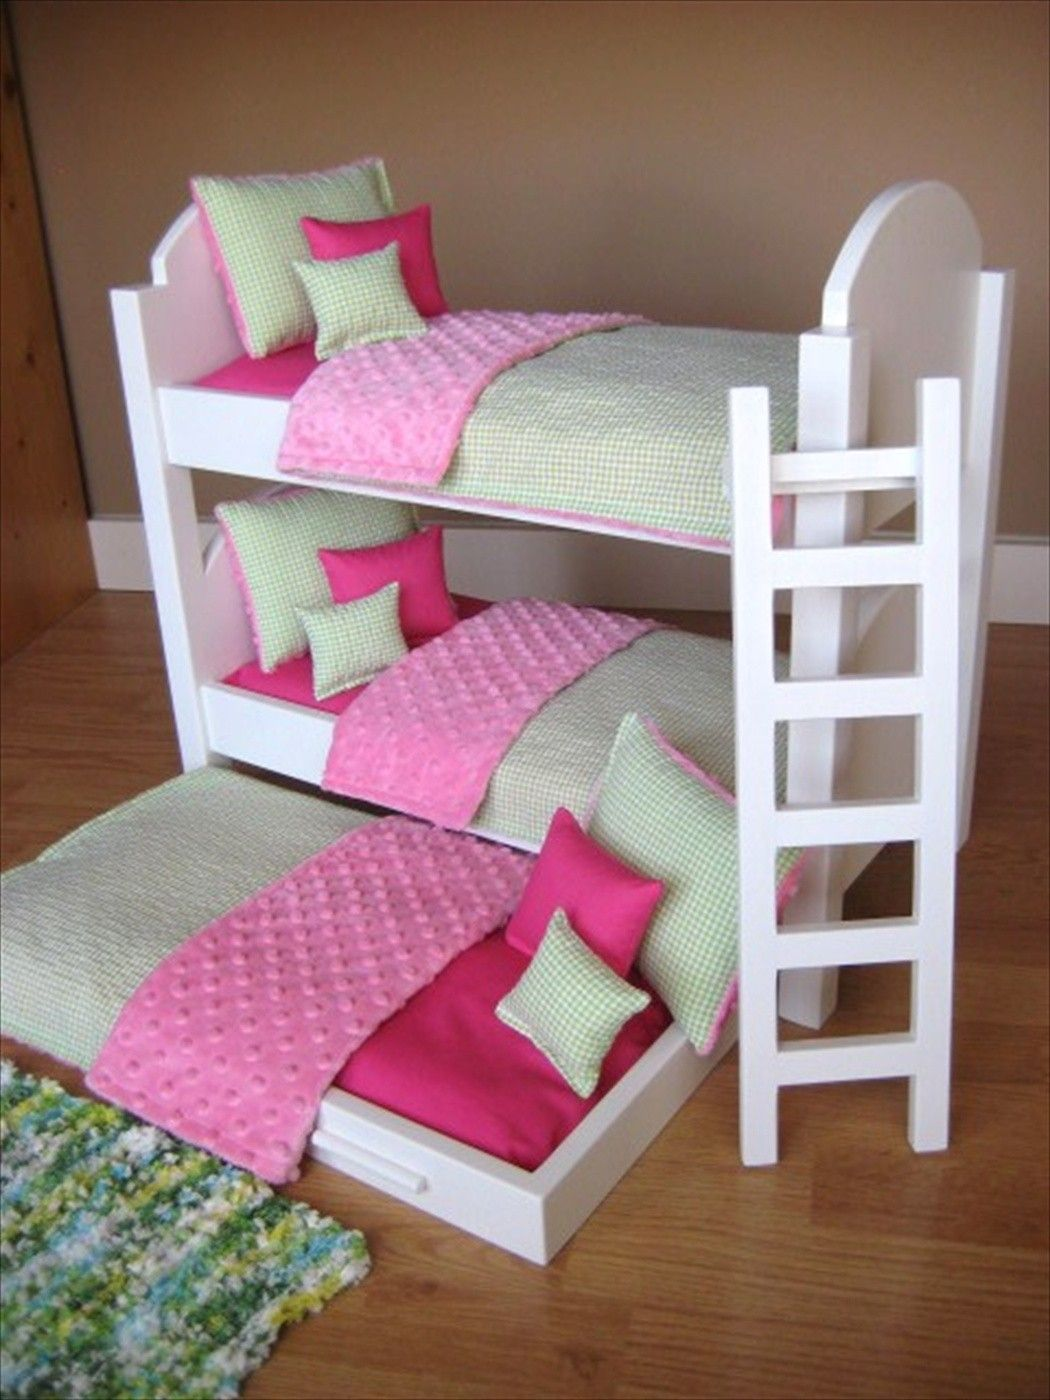 Deluxe Small Bunk Bed Design For Teenage Girl With Cream